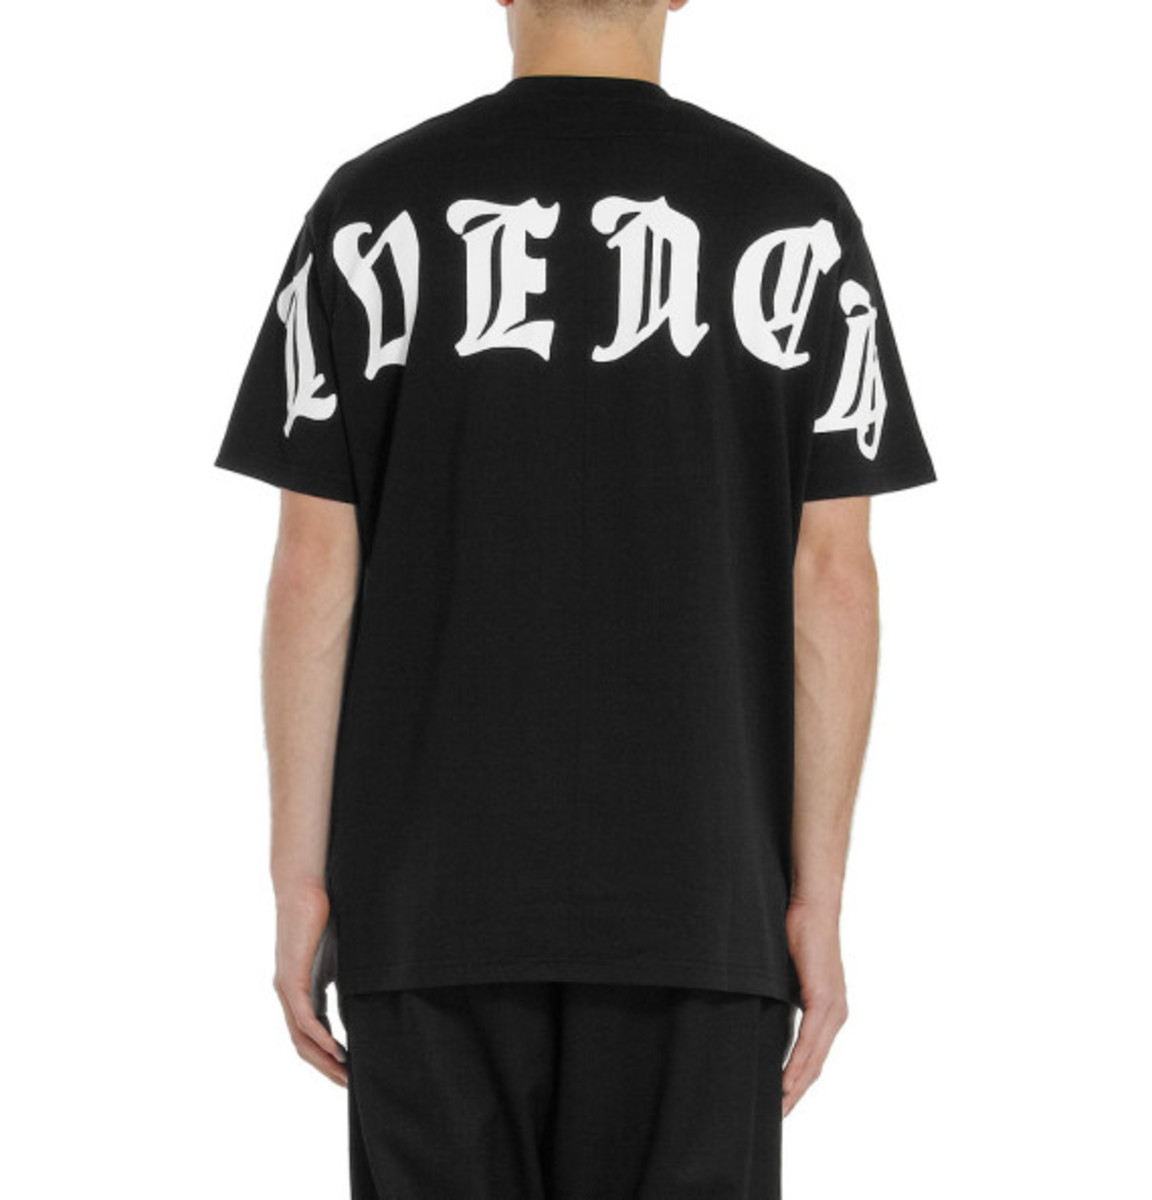 givenchy-columbian-fit-printed-cotton-jersey-tee-04